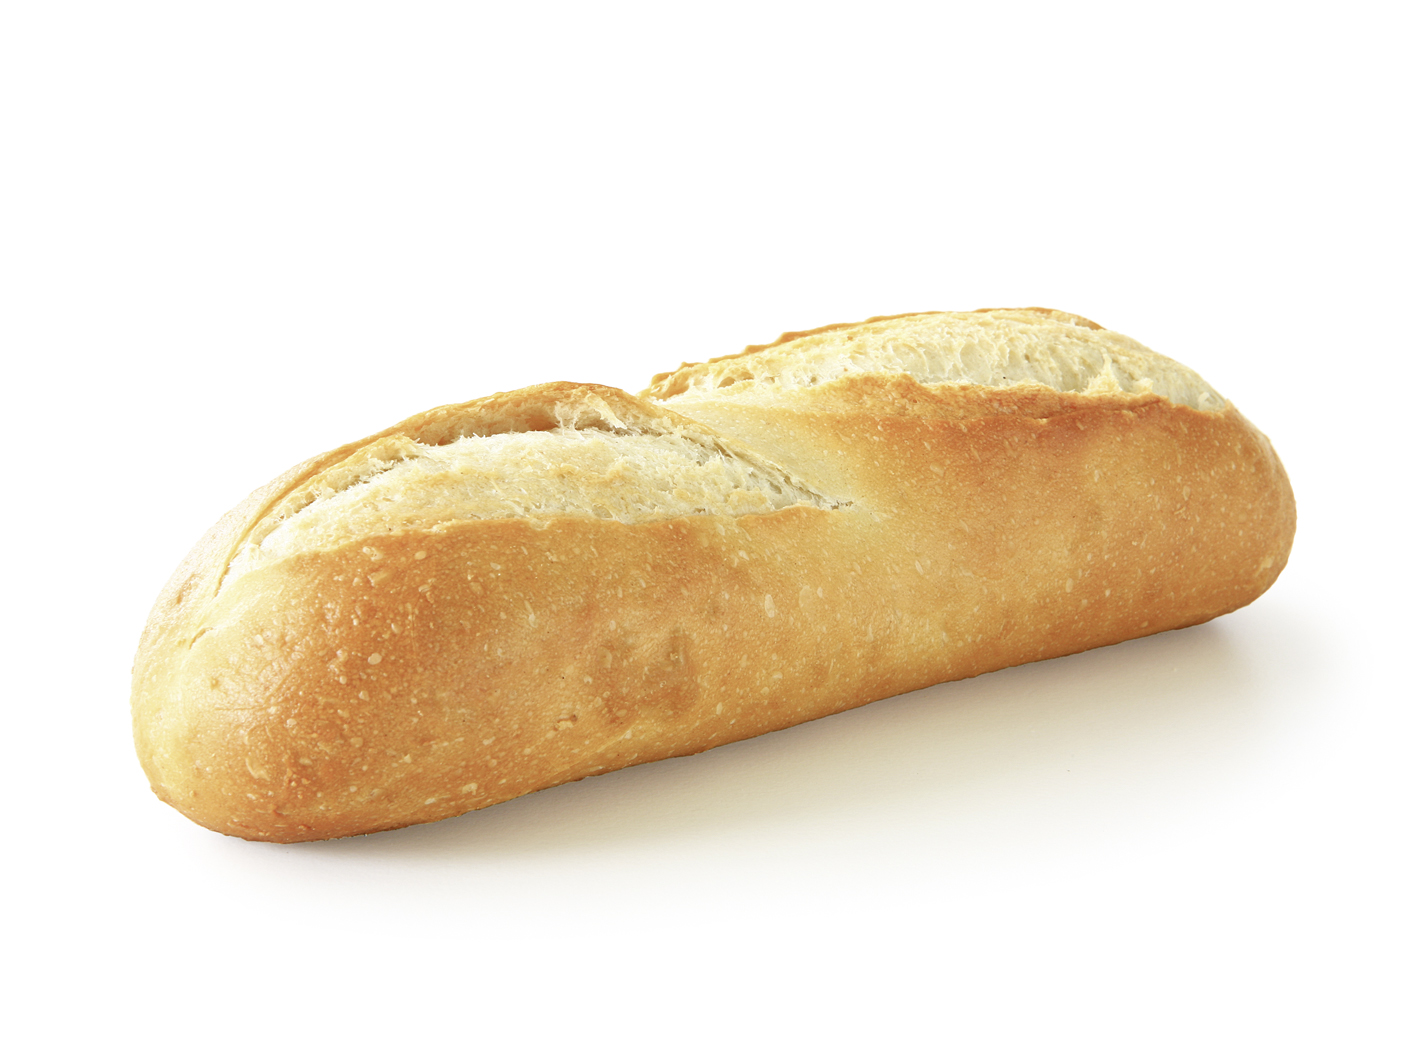 Baguette Roll - Wheat roll baked according to the French tradition length: 20.5 cm